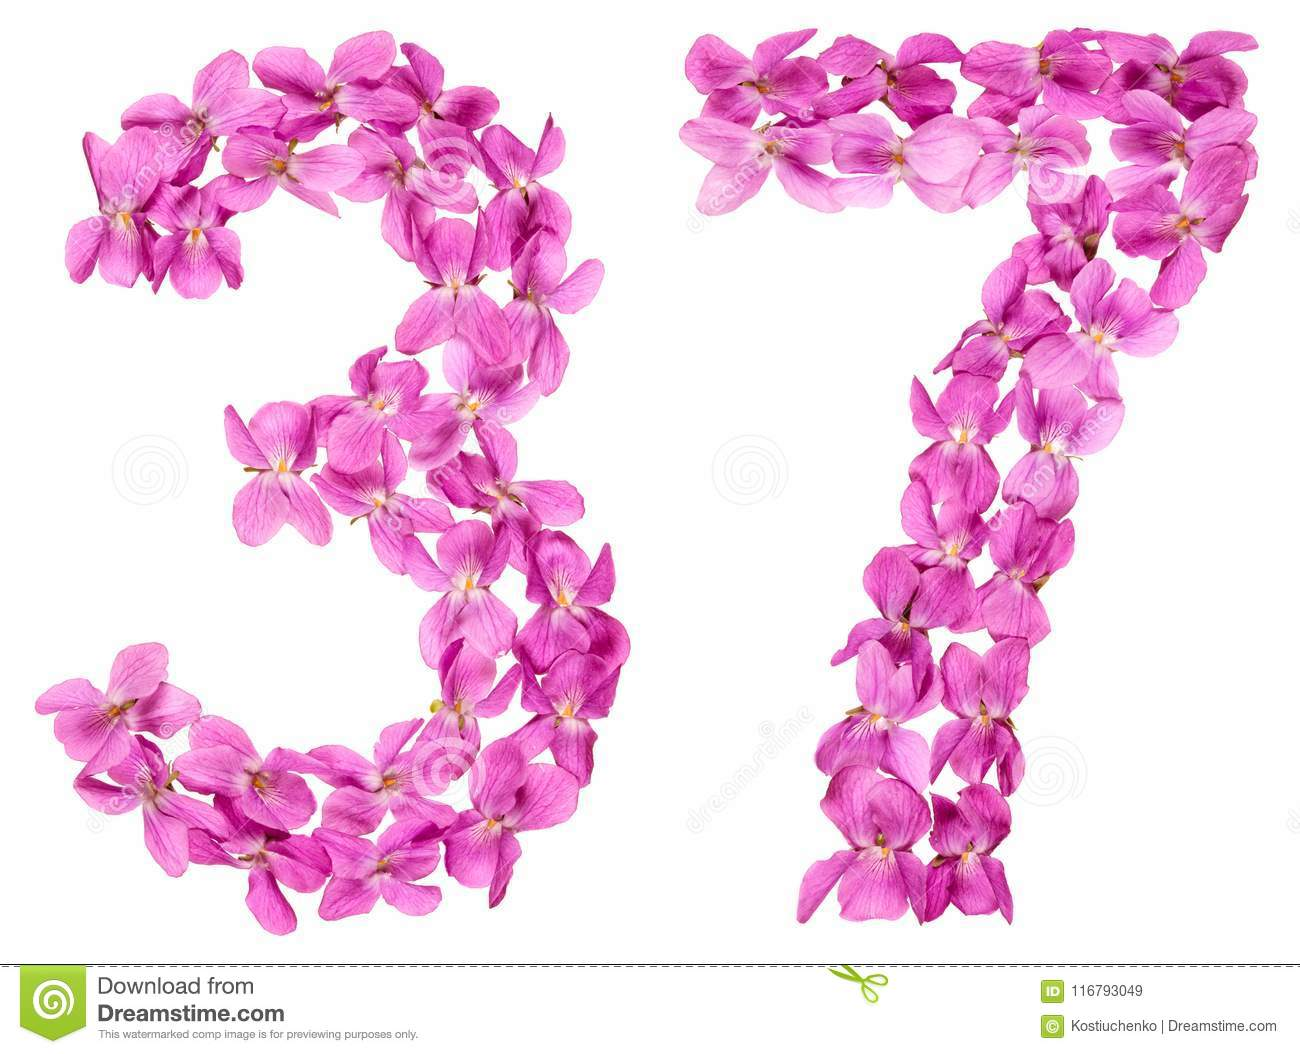 Arabic Numeral 37 Thirty Seven From Flowers Of Viola